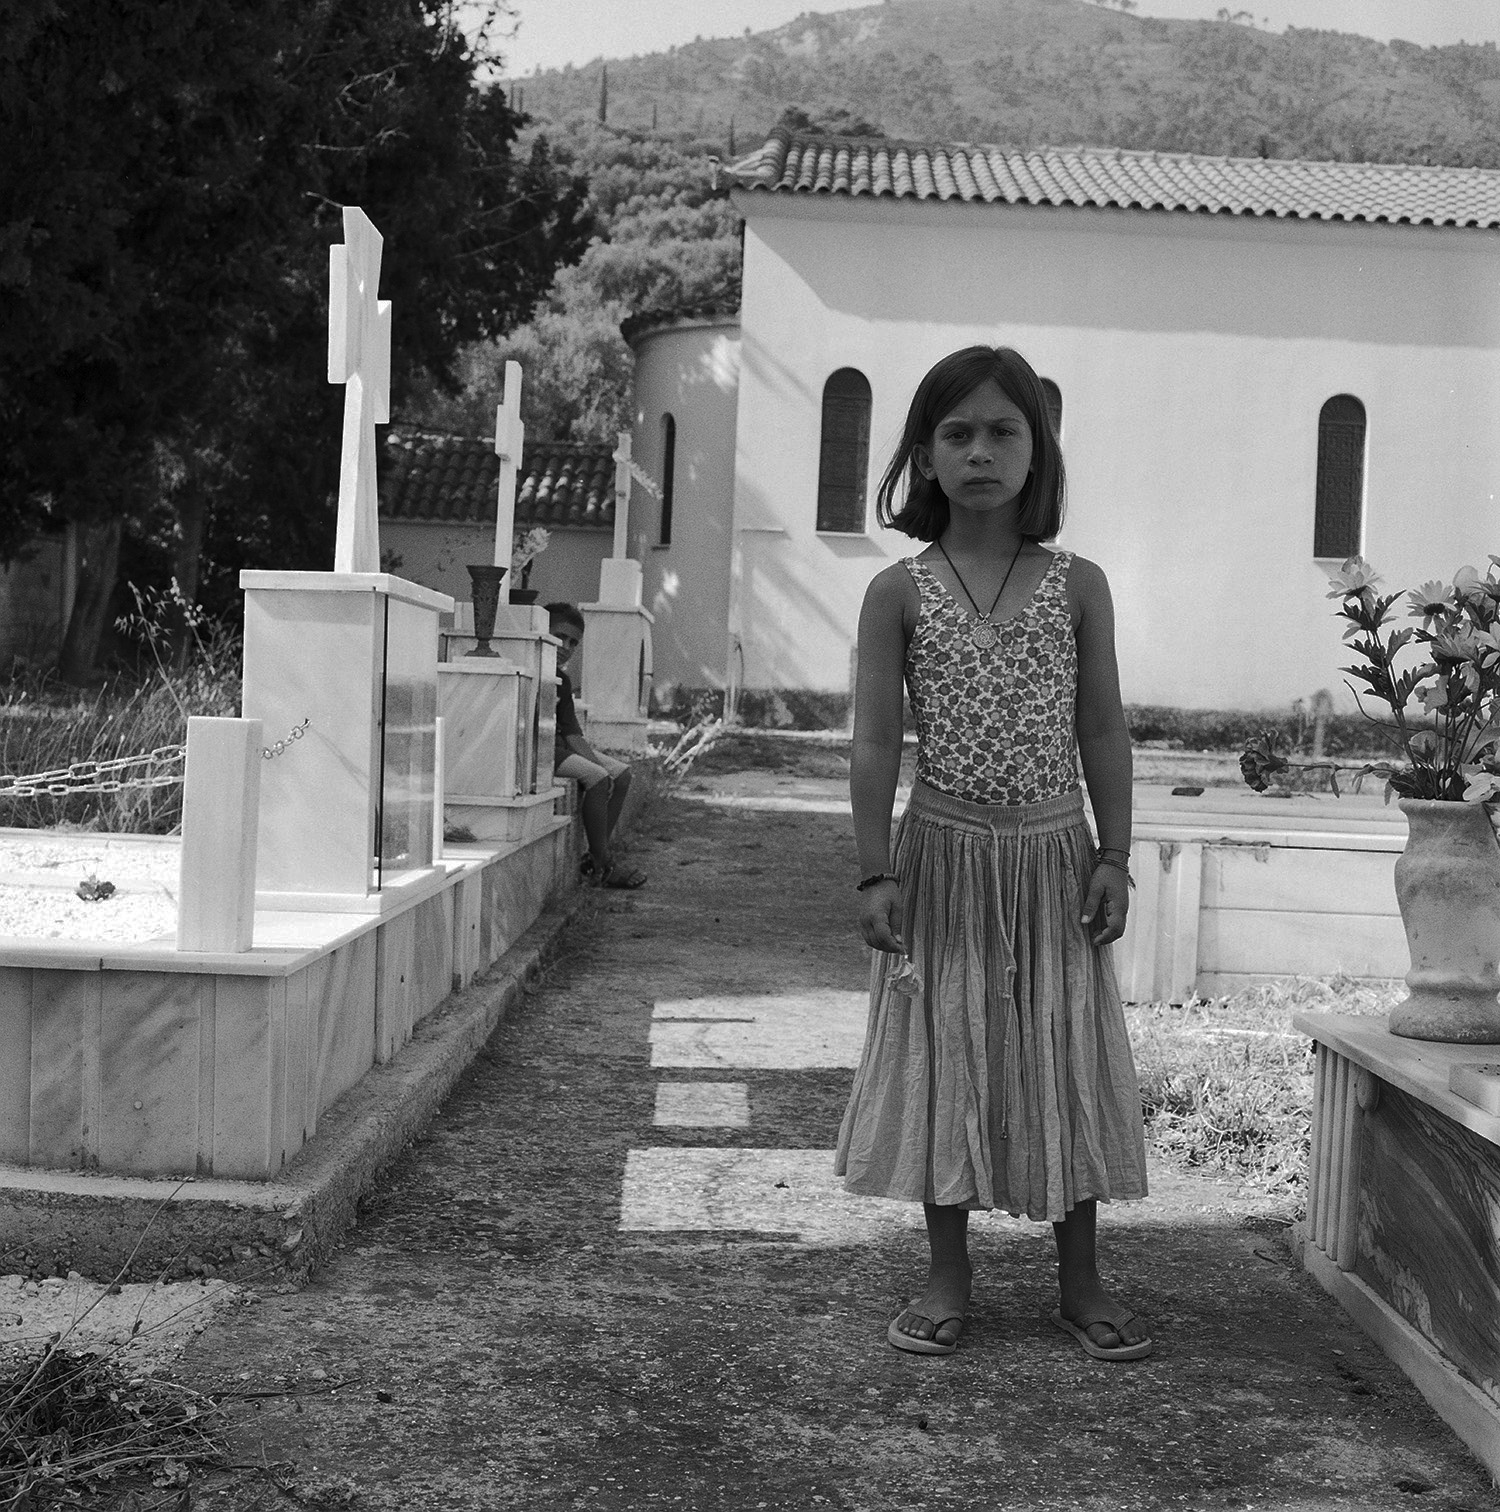 0007_my father's lands ana among the stones .jpg